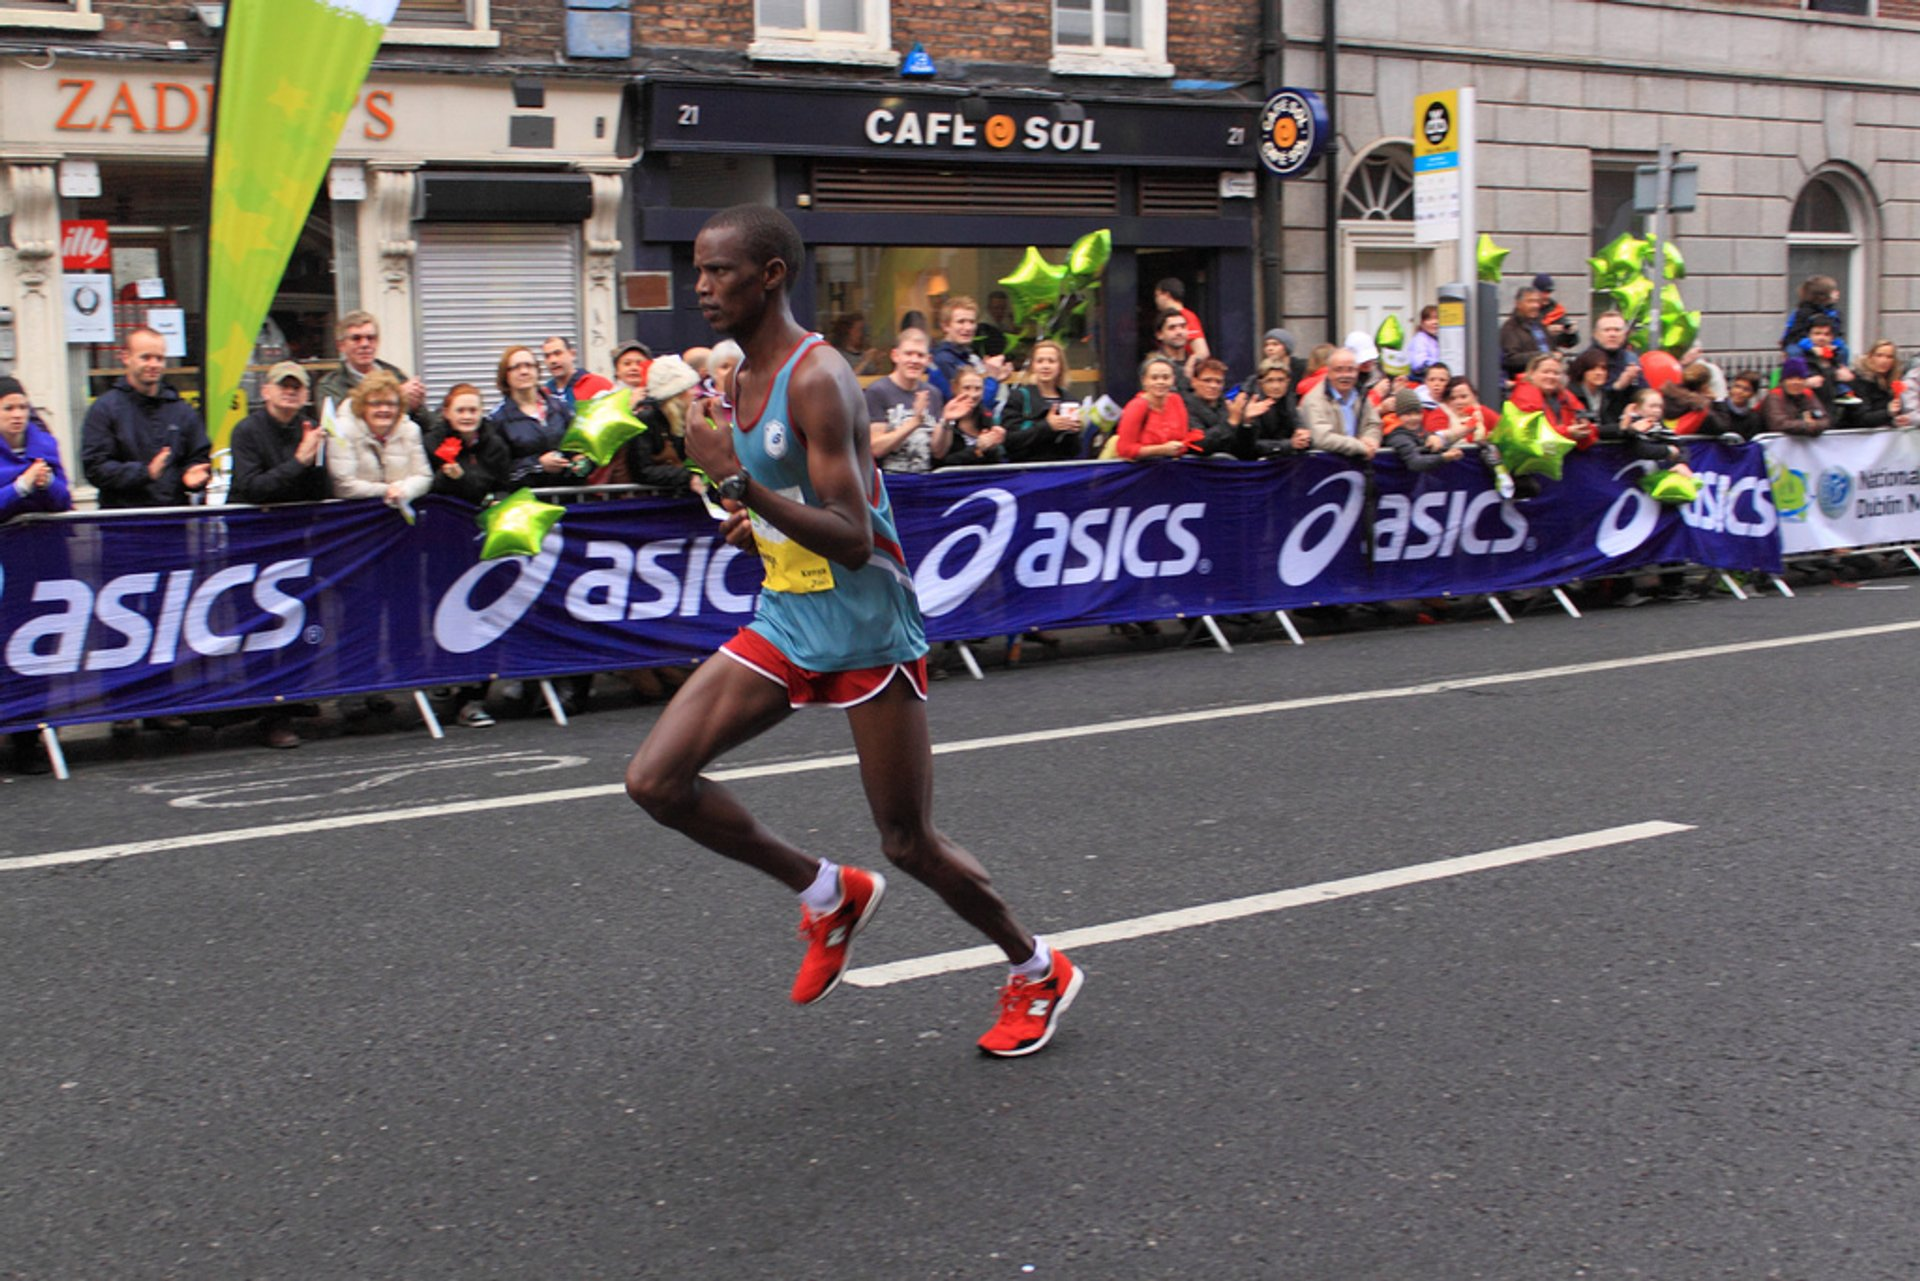 Best time to see KBC Dublin Marathon in Dublin 2020